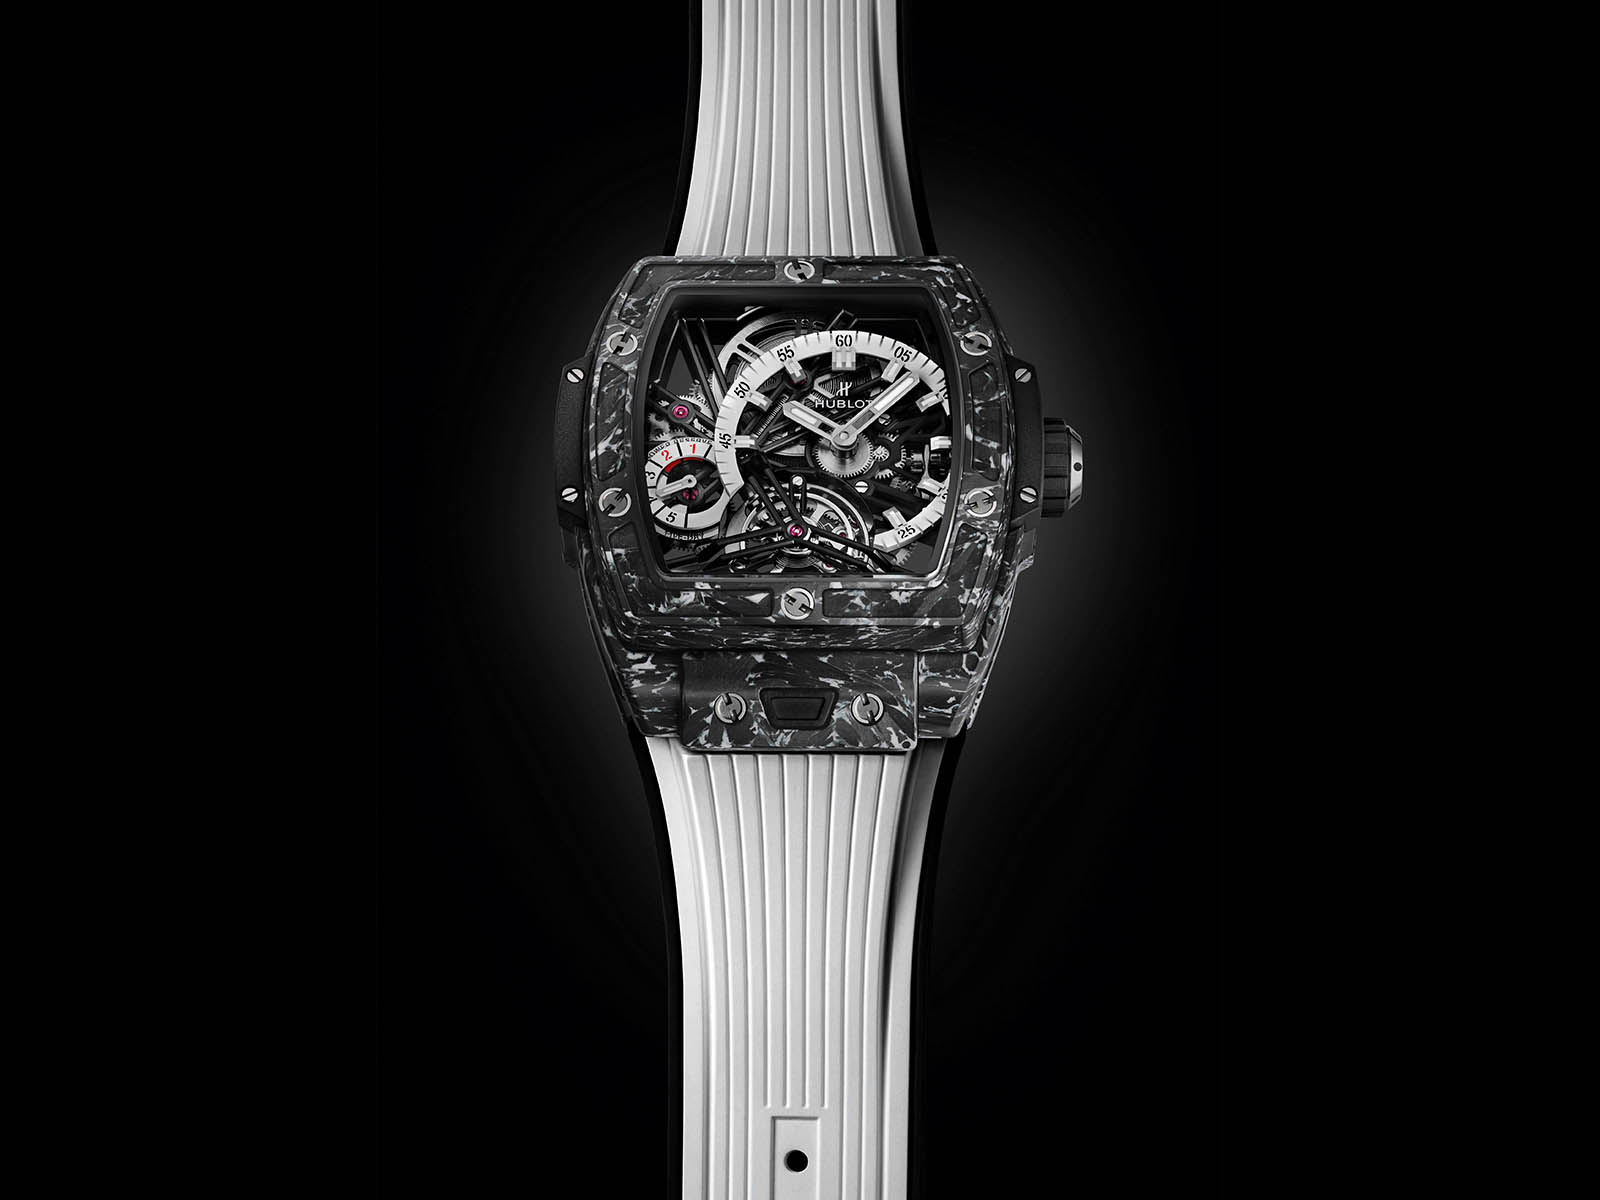 hublot-spirit-of-big-bang-tourbillon-5-day-power-reserve-carbon-white-6.jpg